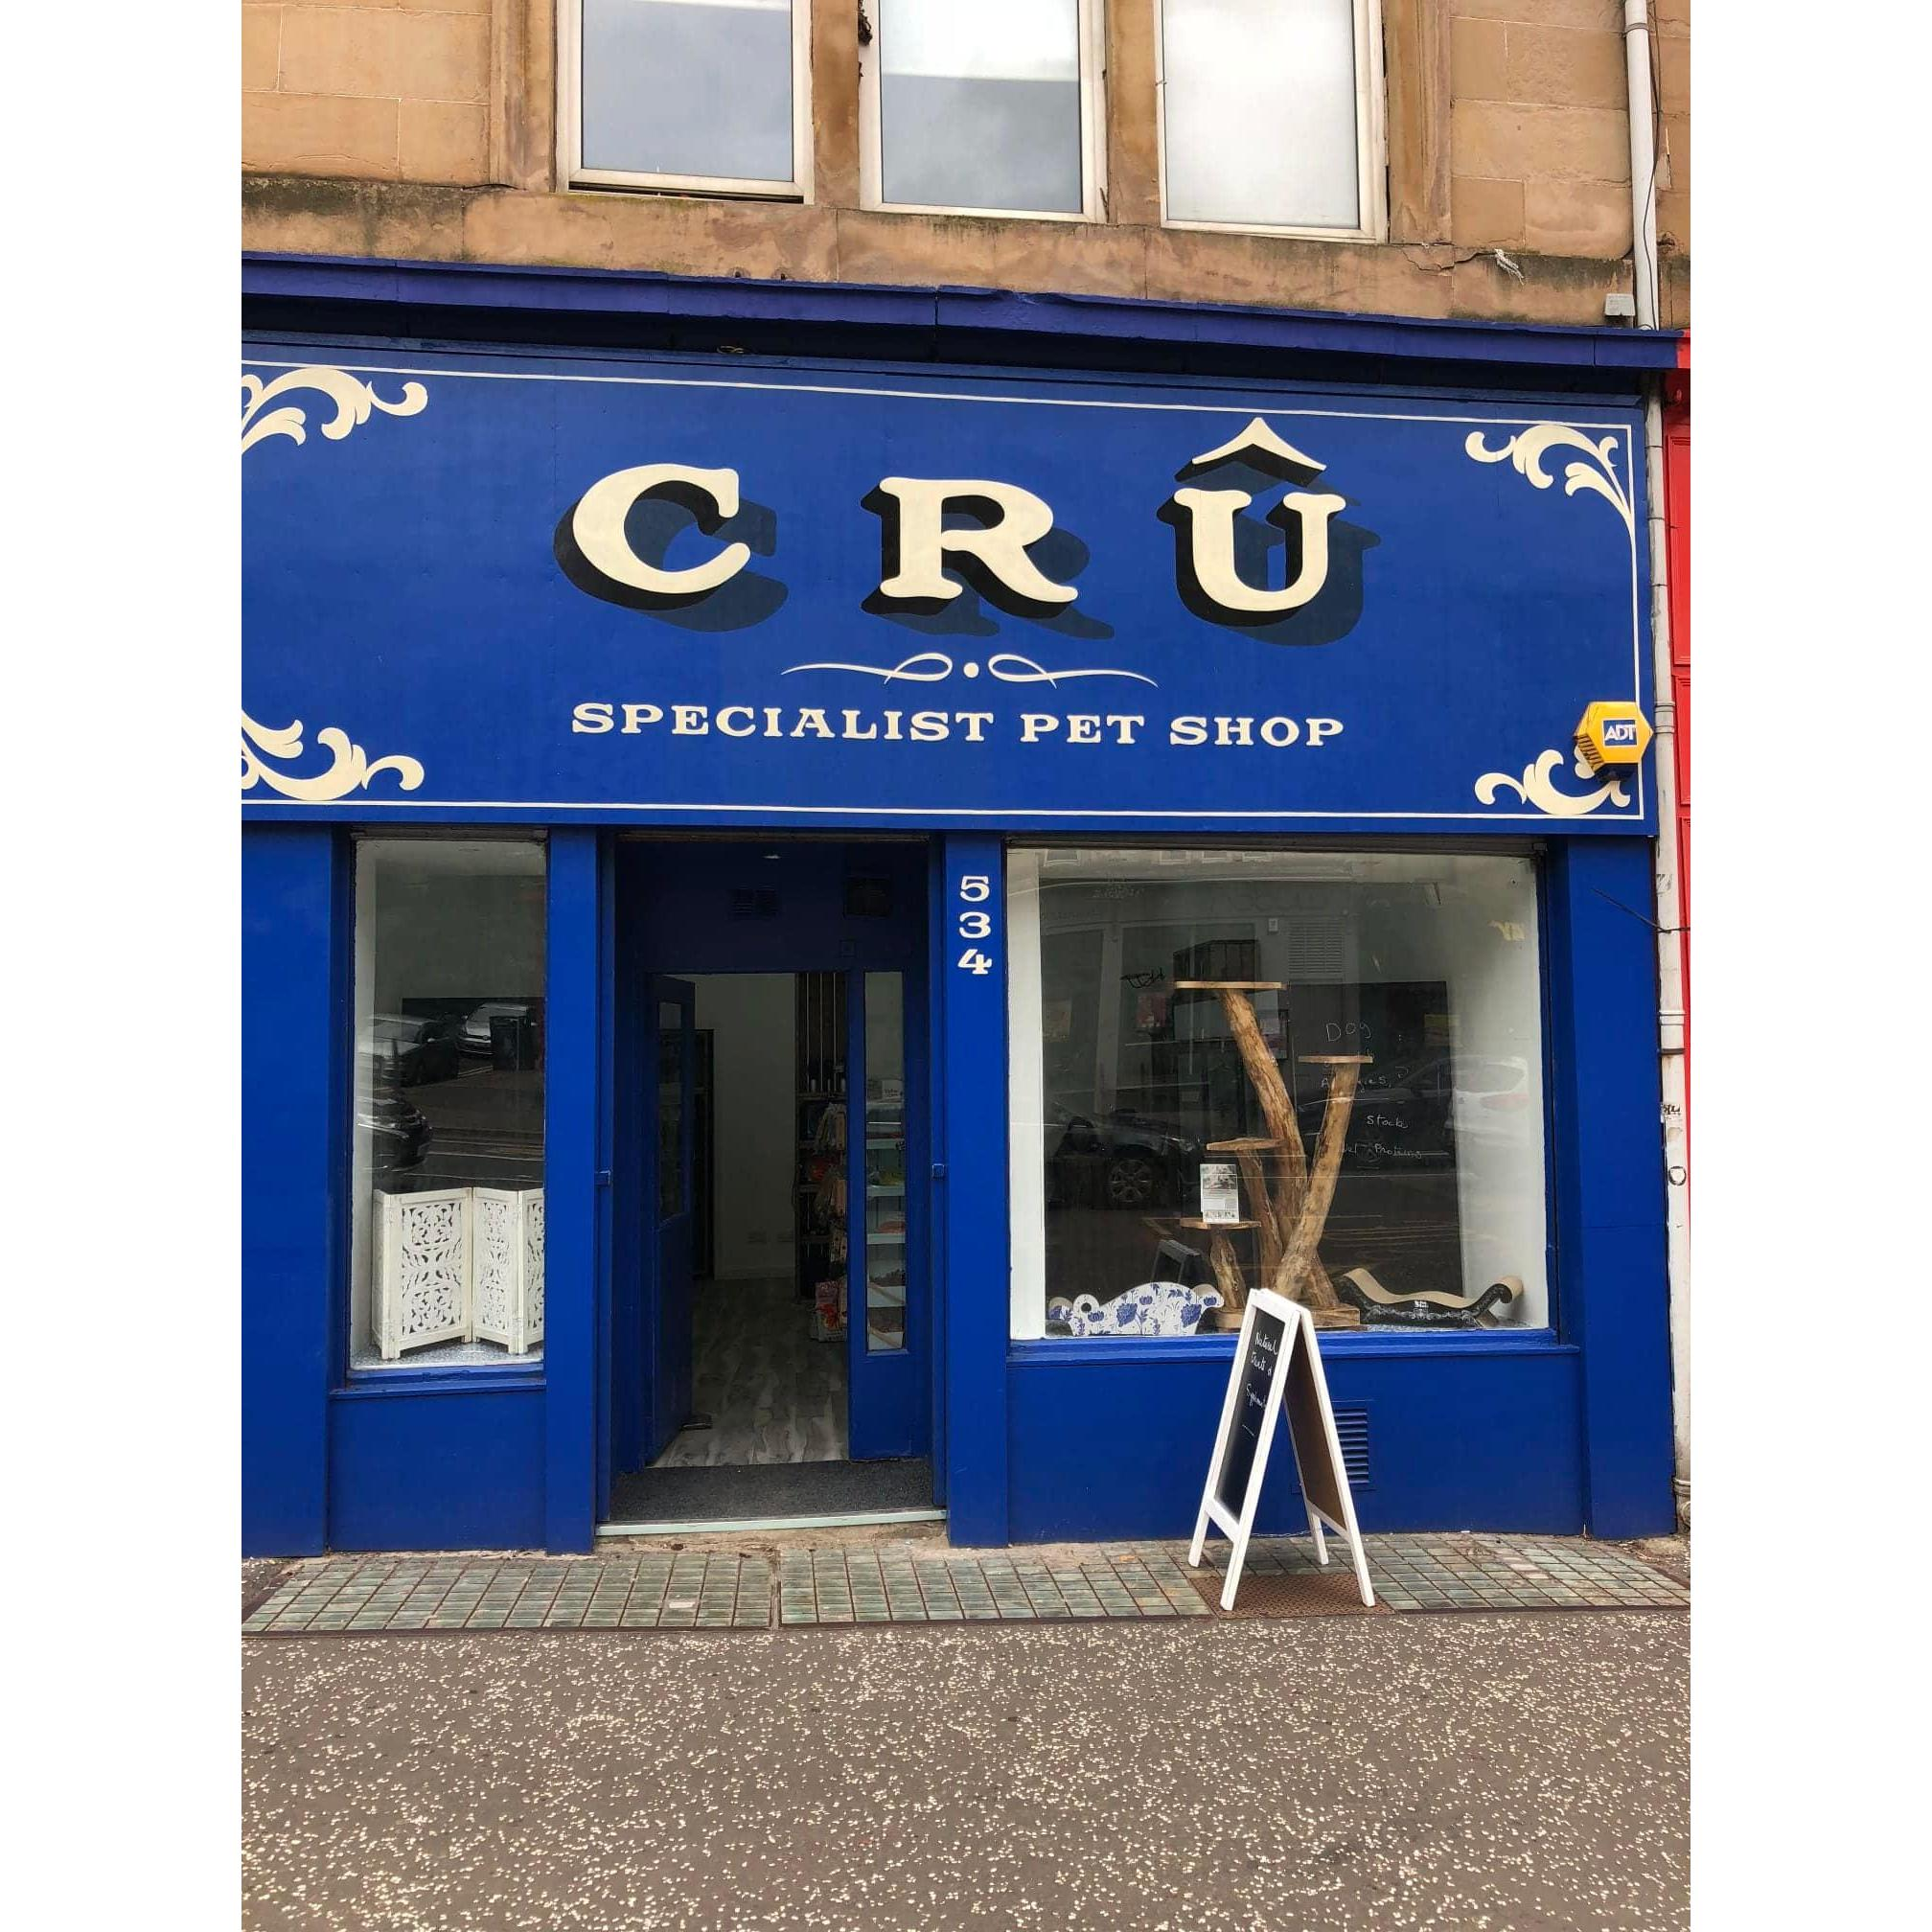 Cru Specialist Pet Shop - Glasgow, Lanarkshire G12 8EL - 01413 879077 | ShowMeLocal.com